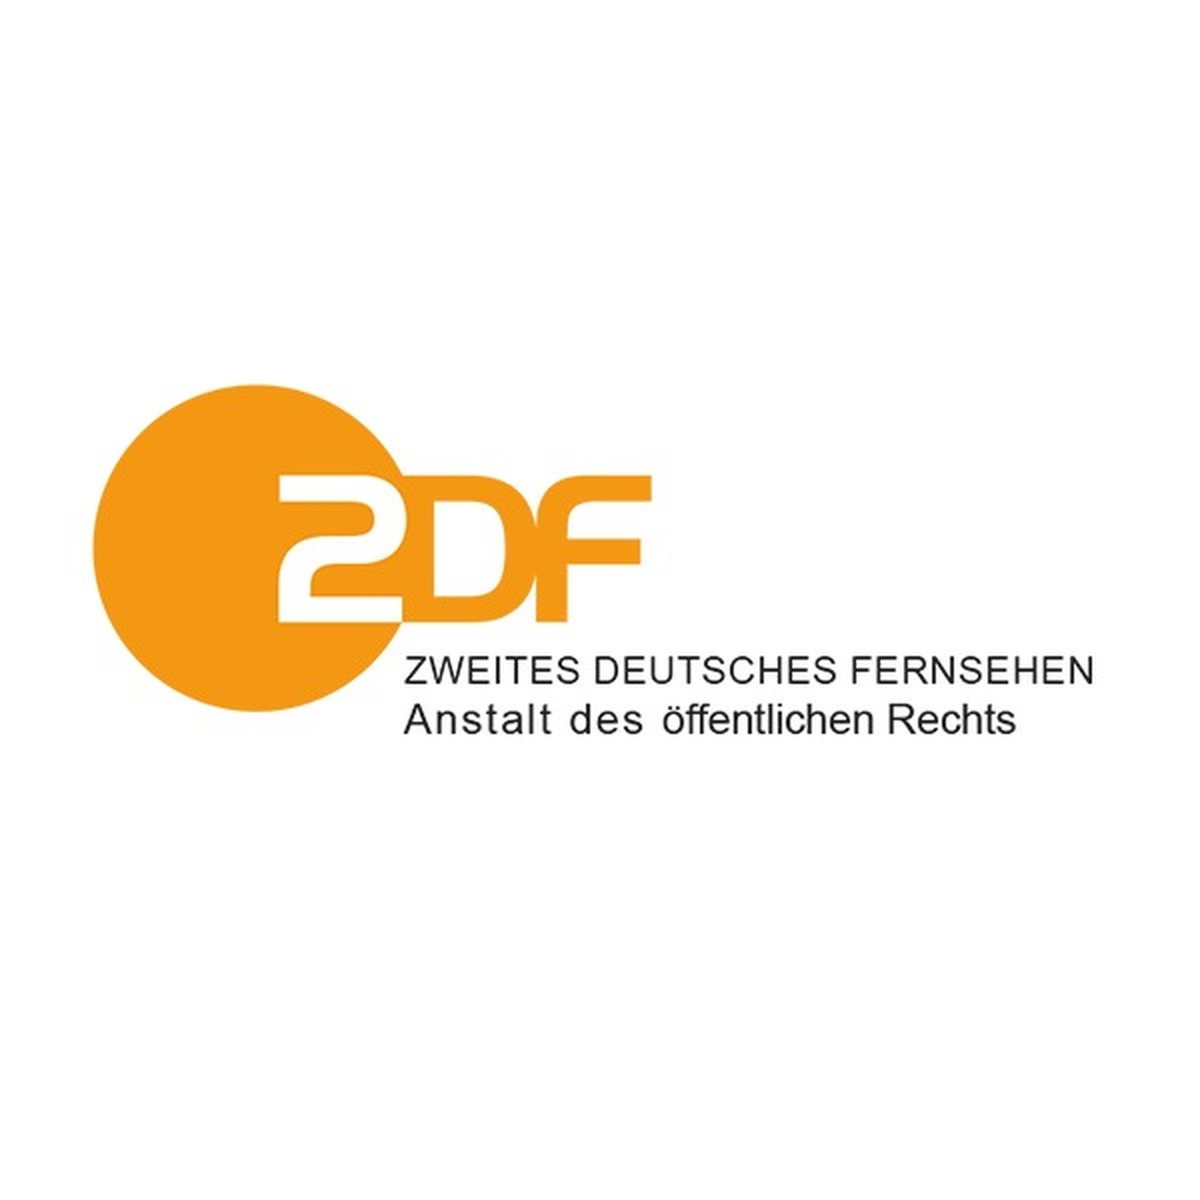 Redakteur/in / Projektmanager/in Digitale Medien (m/w/d)